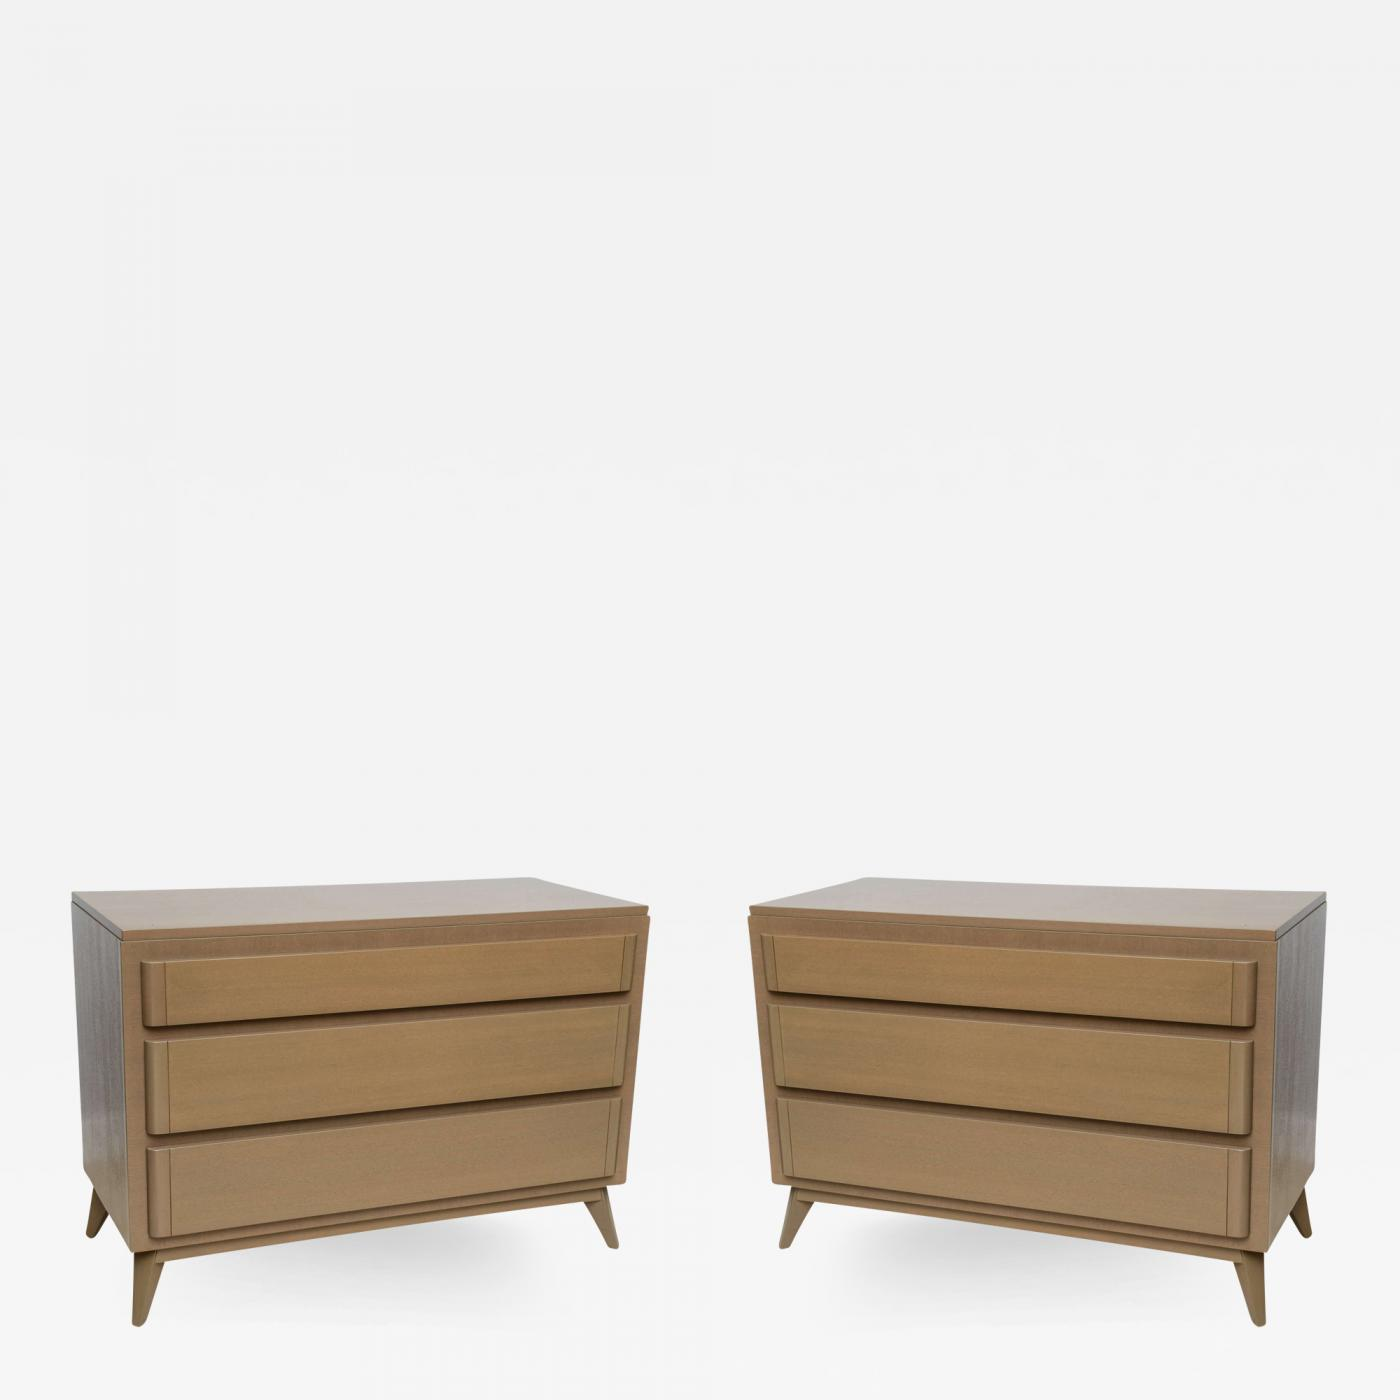 Incredible R Way Rway Furniture Company Pair Of American Modern Cerused Oak Commodes Download Free Architecture Designs Itiscsunscenecom